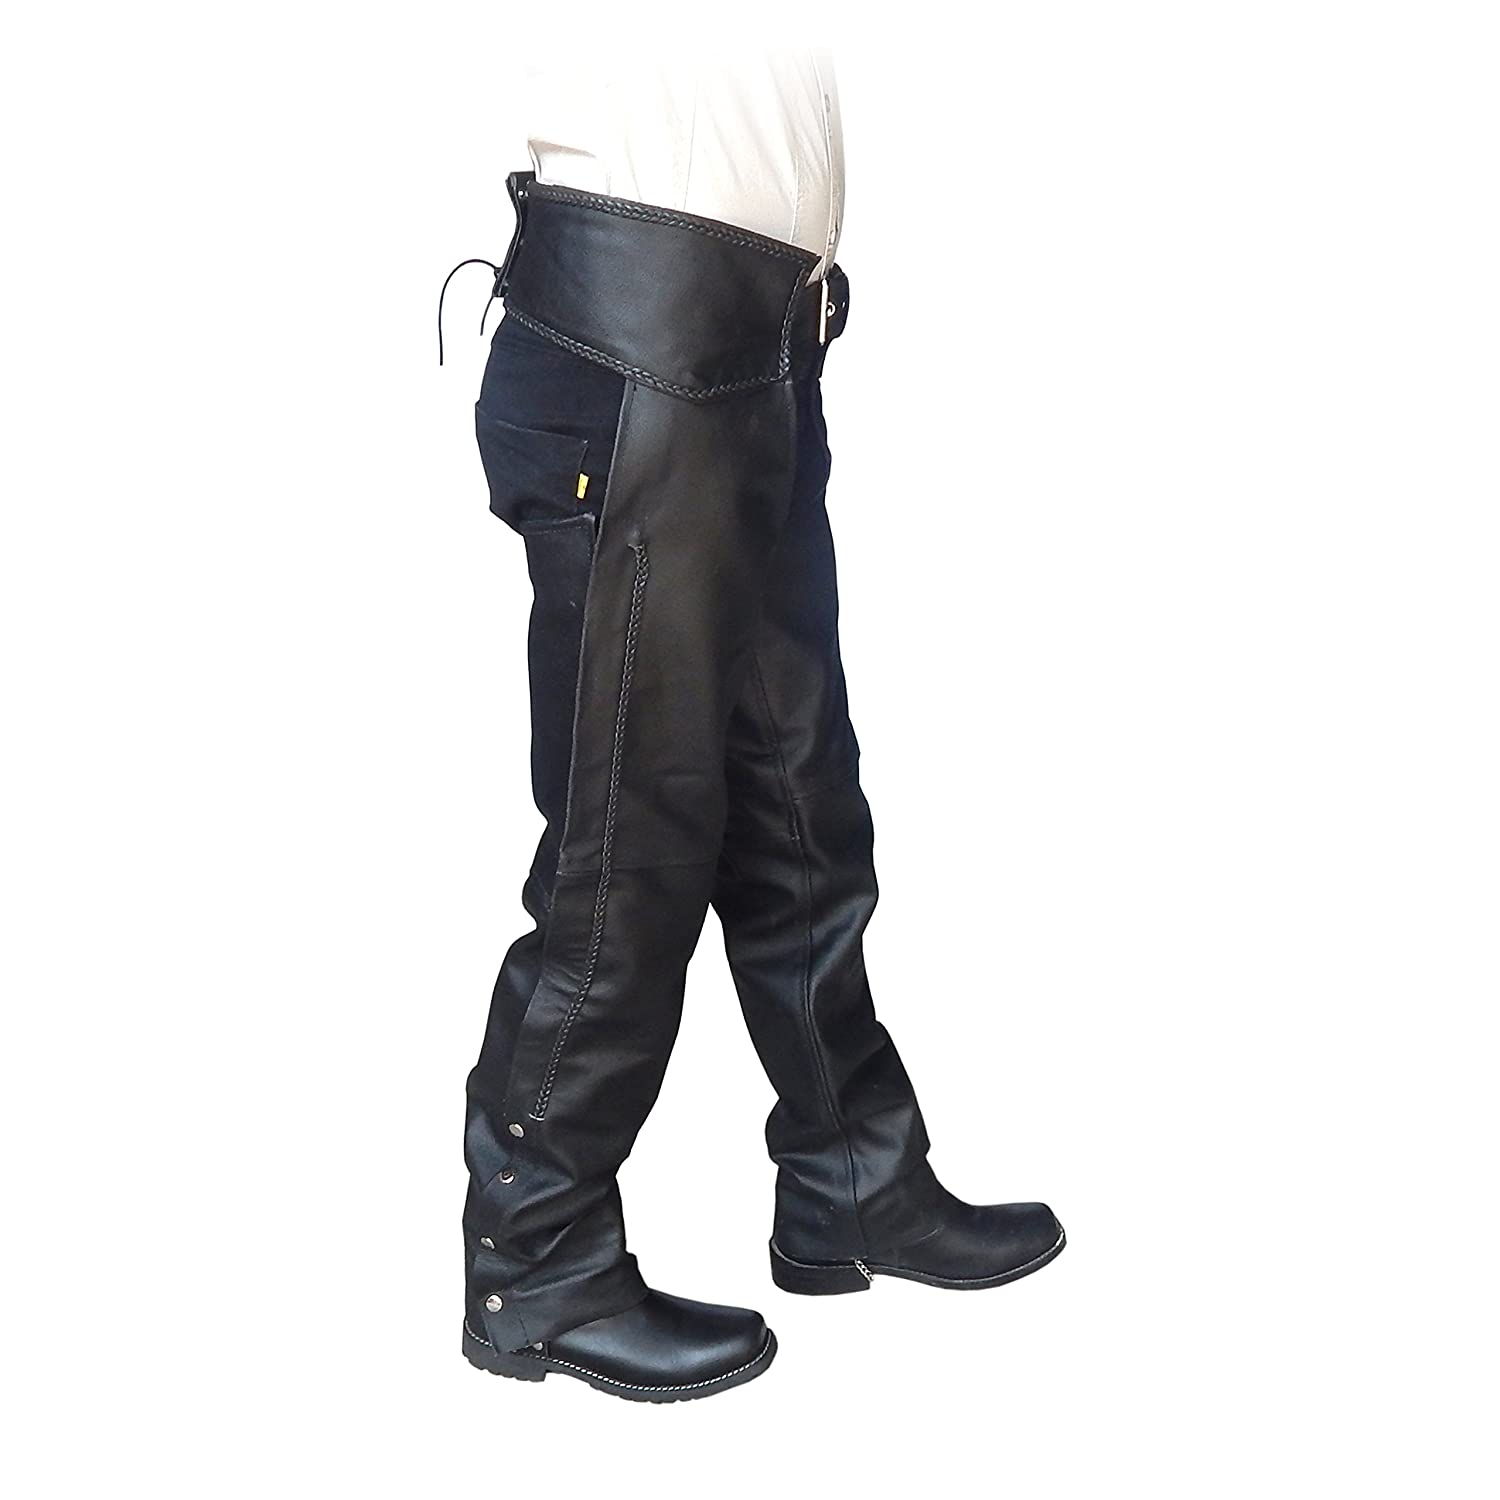 4Fit Unisex Braided Black Leather Biker Motorcycle Chaps New All Sizes Small